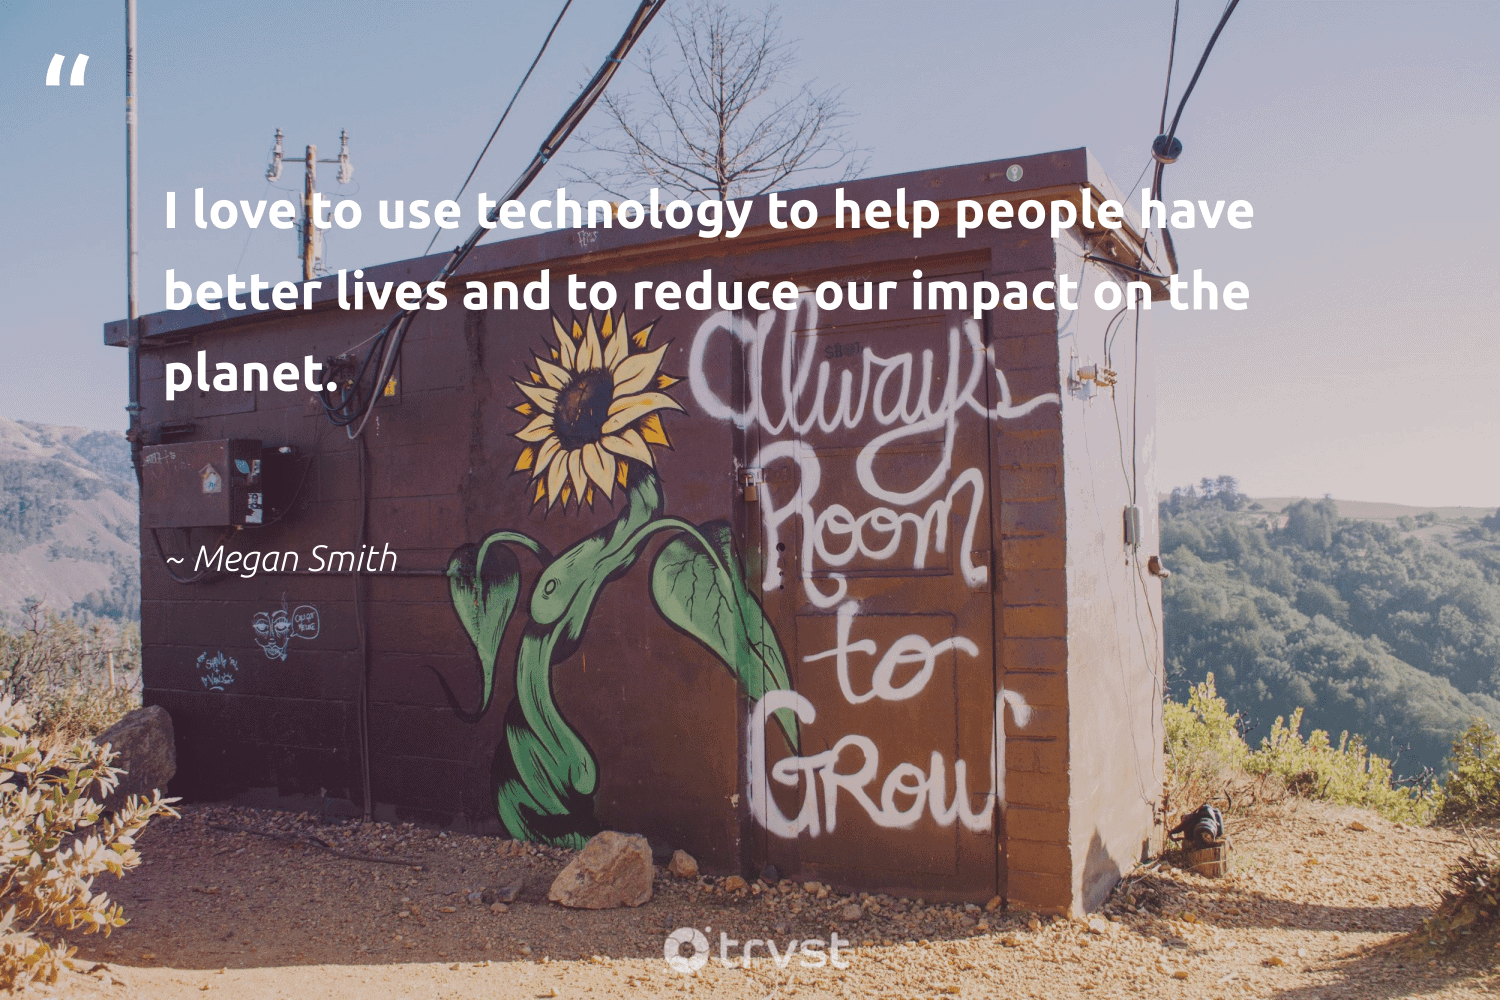 """""""I love to use technology to help people have better lives and to reduce our impact on the planet.""""  - Megan Smith #trvst #quotes #impact #love #reduce #planet #upcycle #betterplanet #greenliving #dogood #recycle #socialchange"""